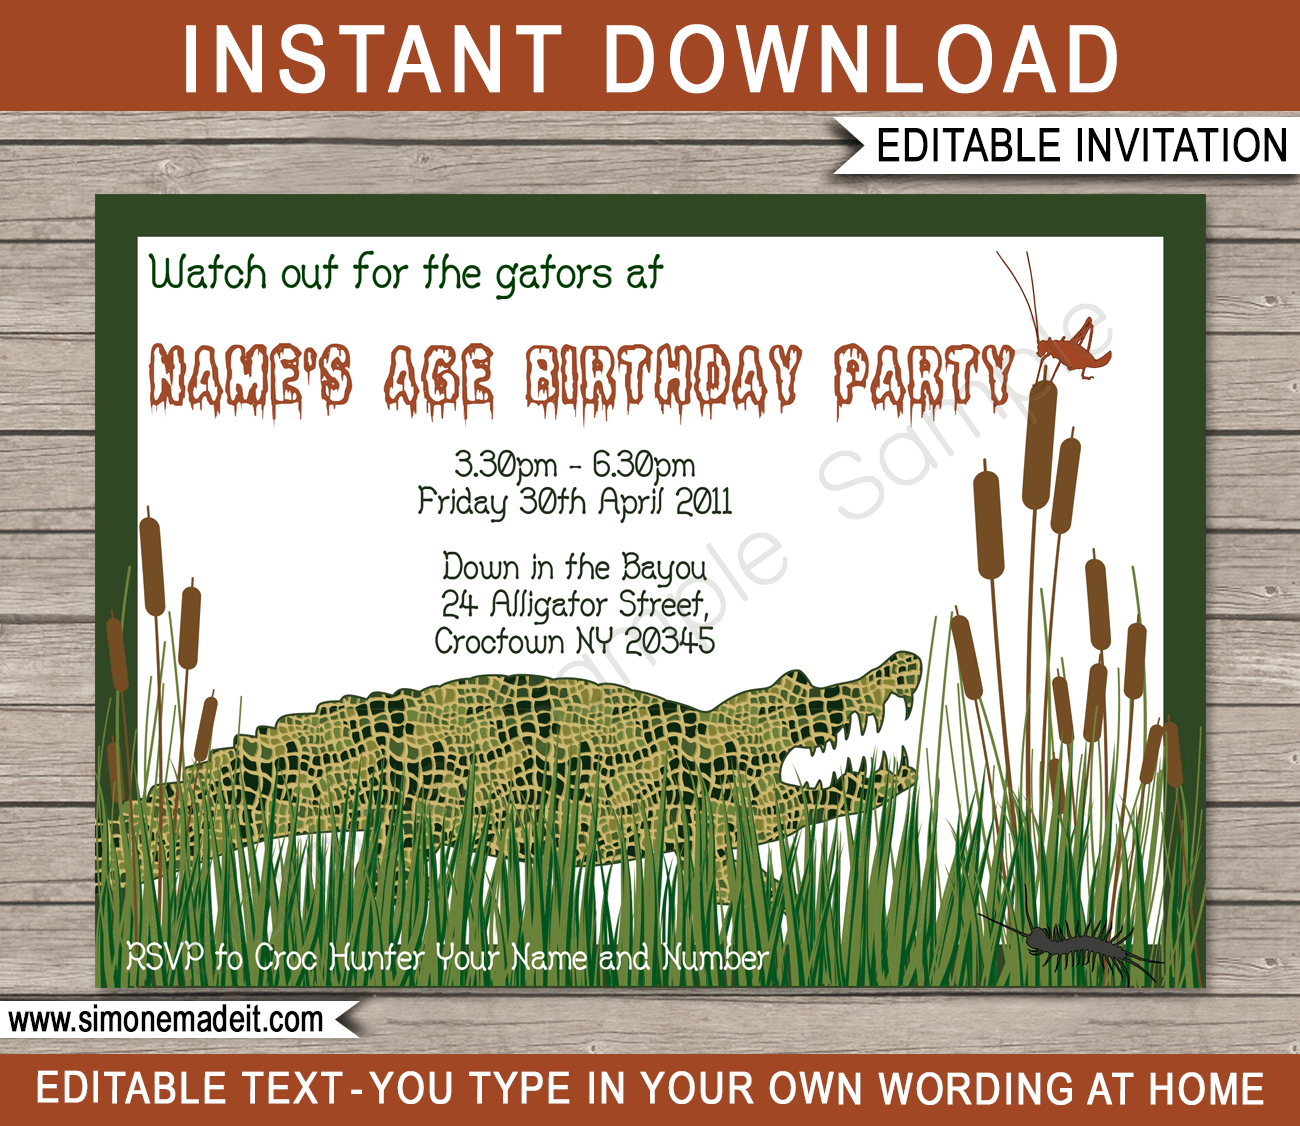 Swamp Party Invitations | Birthday Party | Editable DIY Theme Template | INSTANT DOWNLOAD $7.50 via SIMONEmadeit.com